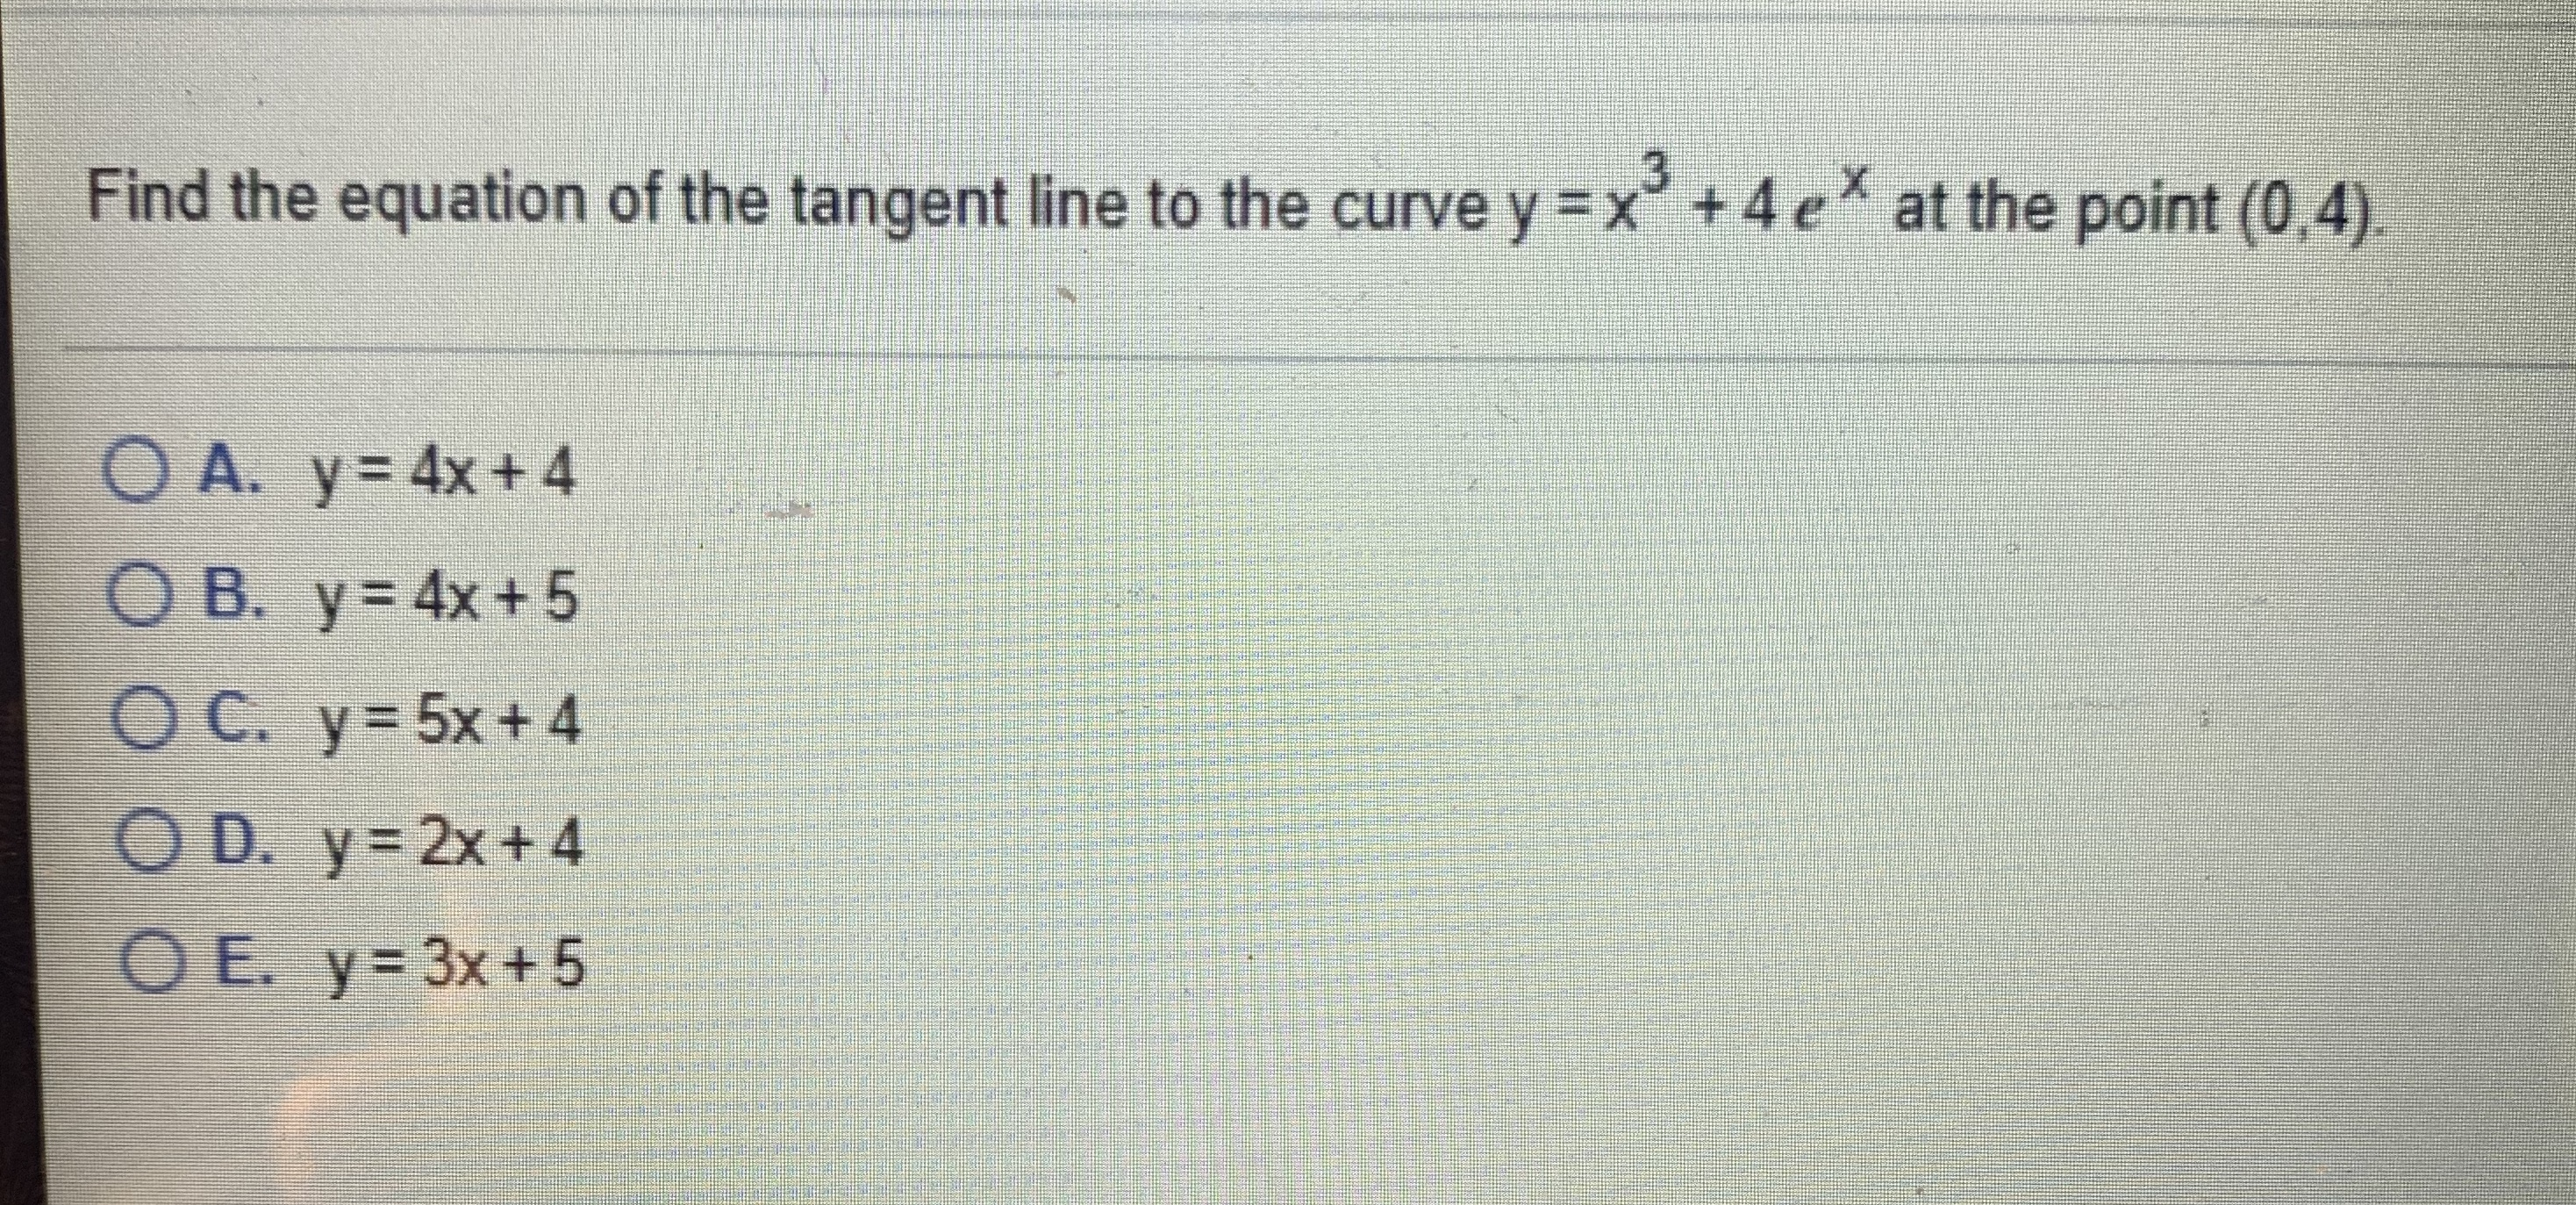 Find the equation of the tangent line to the curve y =x° +4 e at the point (0,4). O A. y= 4x+4 O B. y= 4x+ 5 OC. y=5x+4 O D. y= 2x+4 OE. y= 3x+5